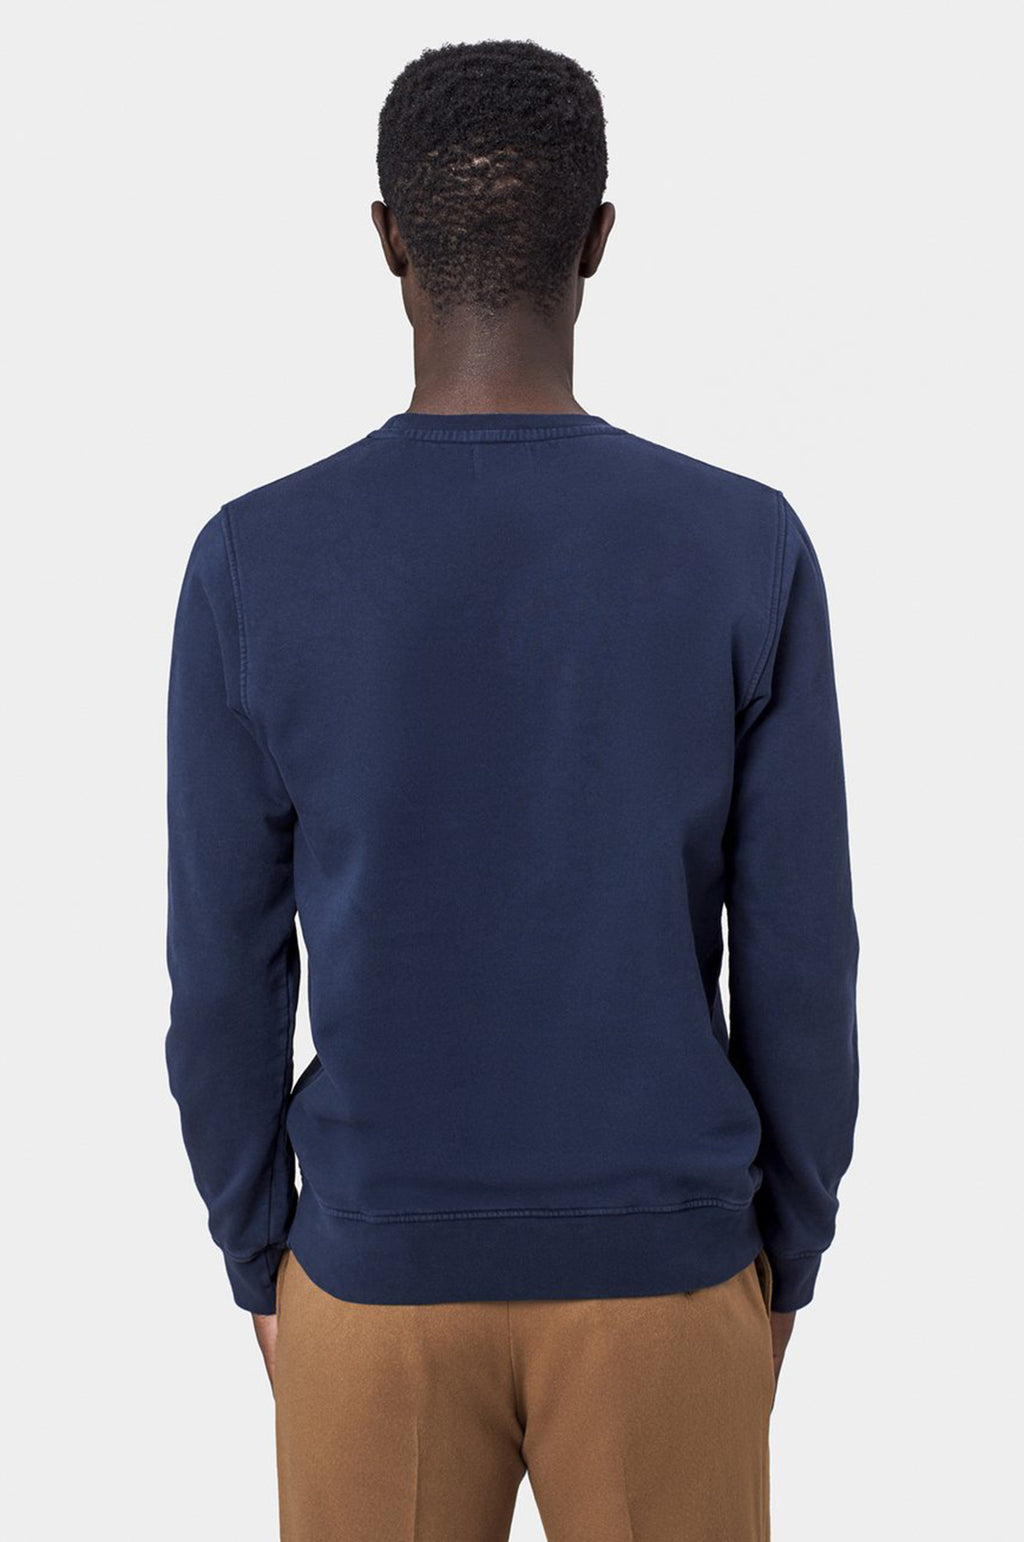 Classic Organic Crew Sweatshirt in Navy Blue